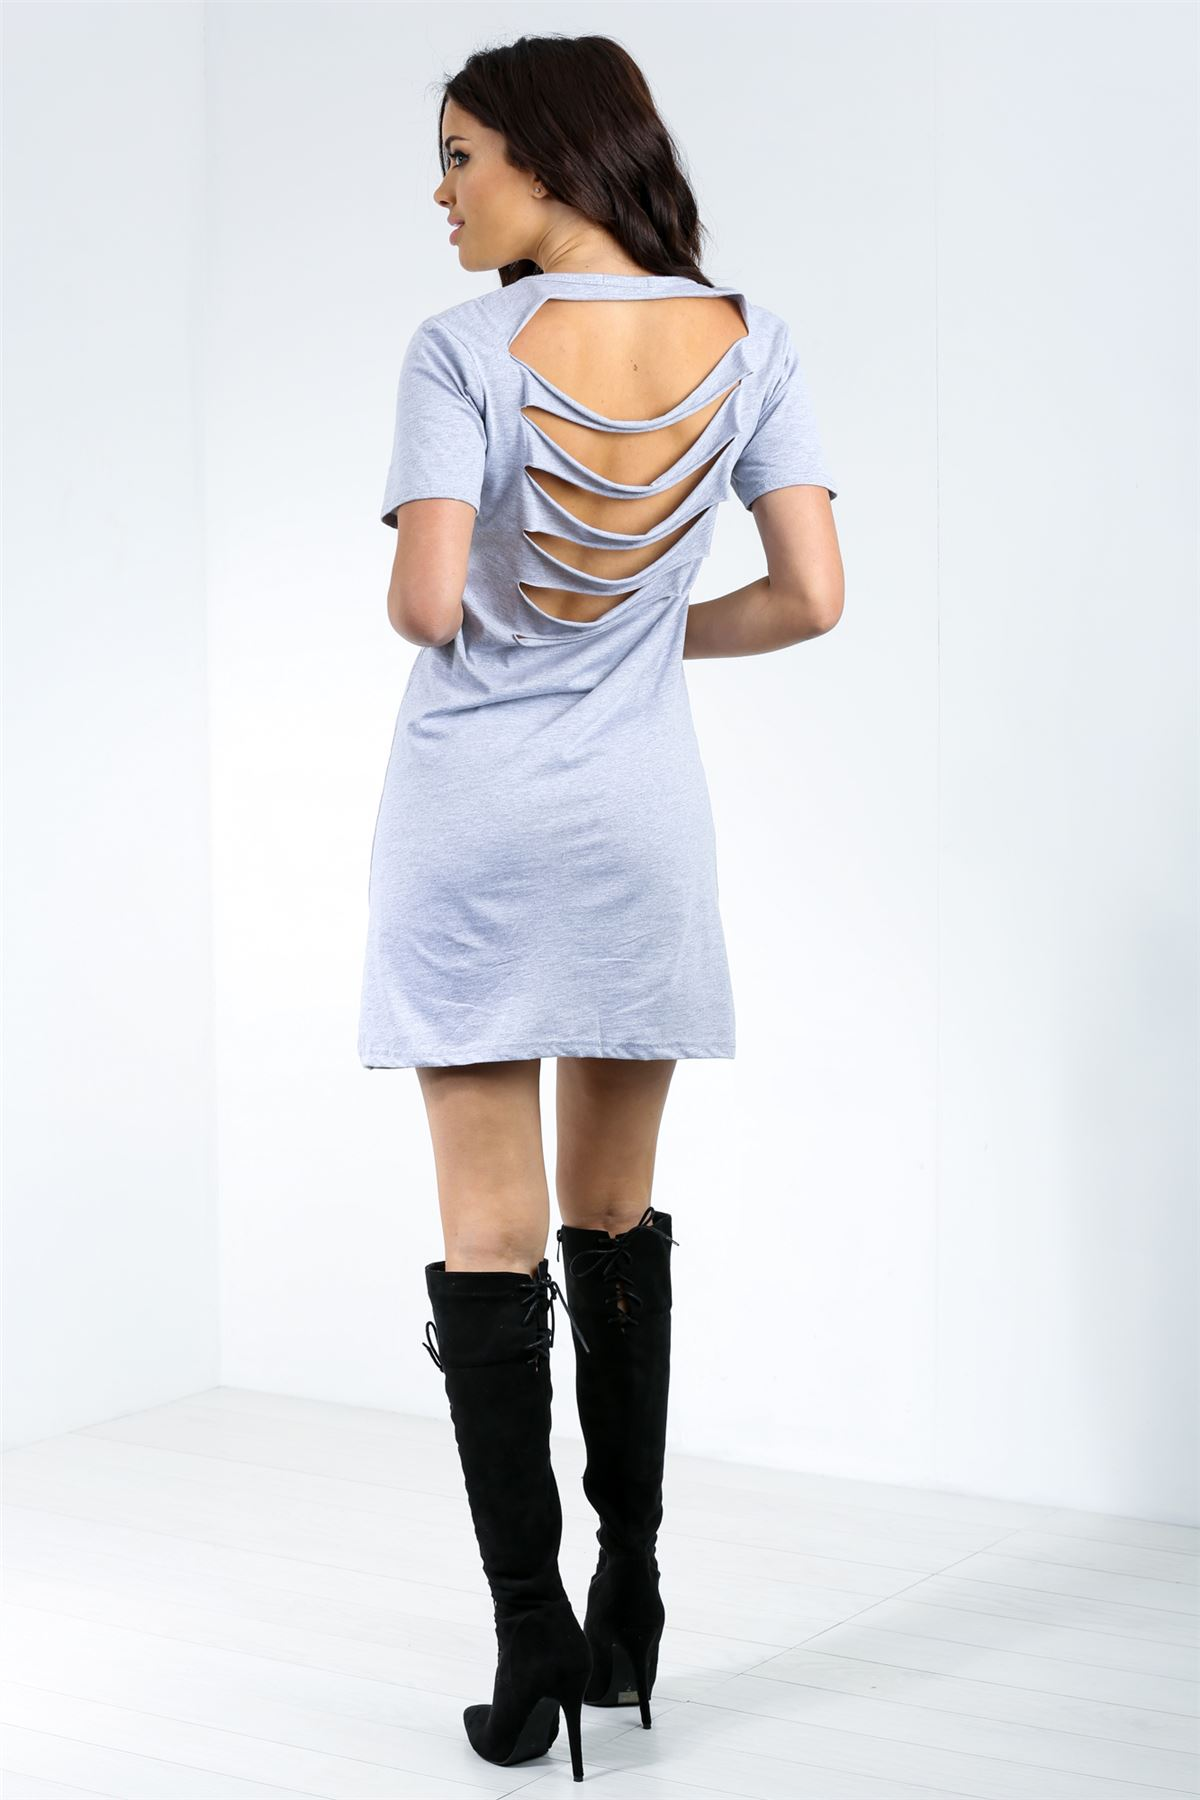 Find great deals on eBay for baggy t shirt dress. Shop with confidence.